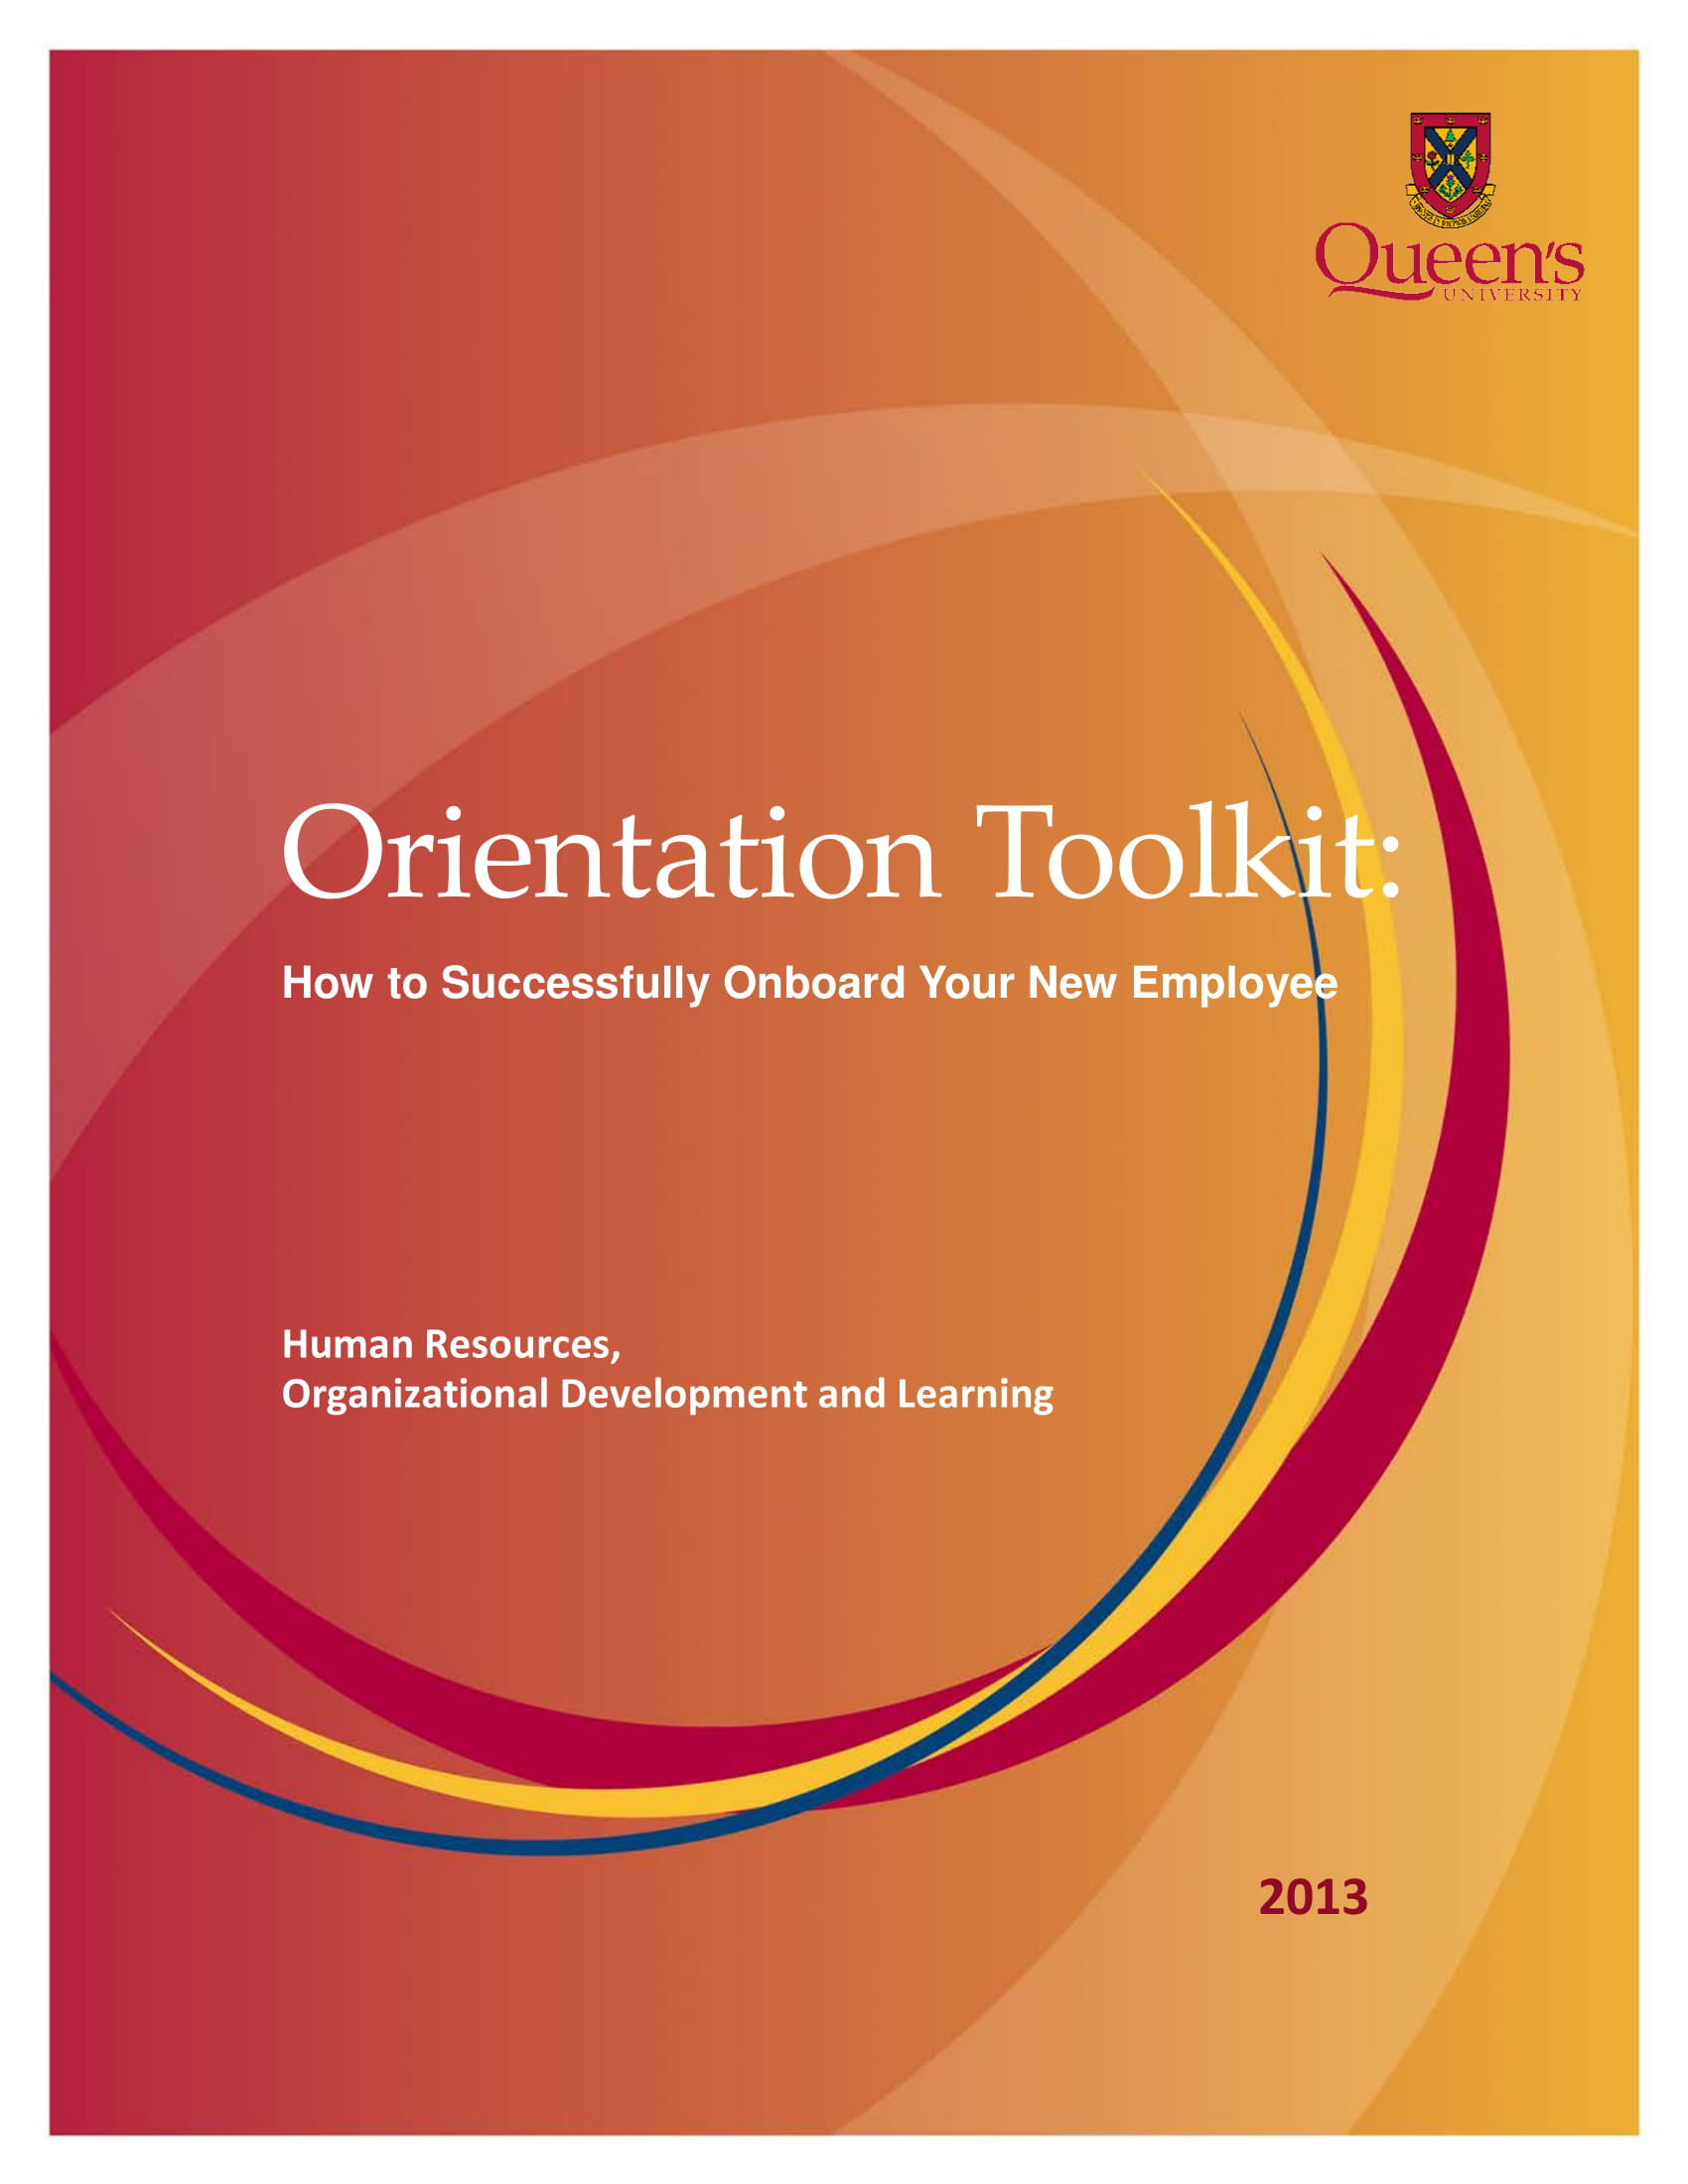 new employee orientation program checklist and toolkit